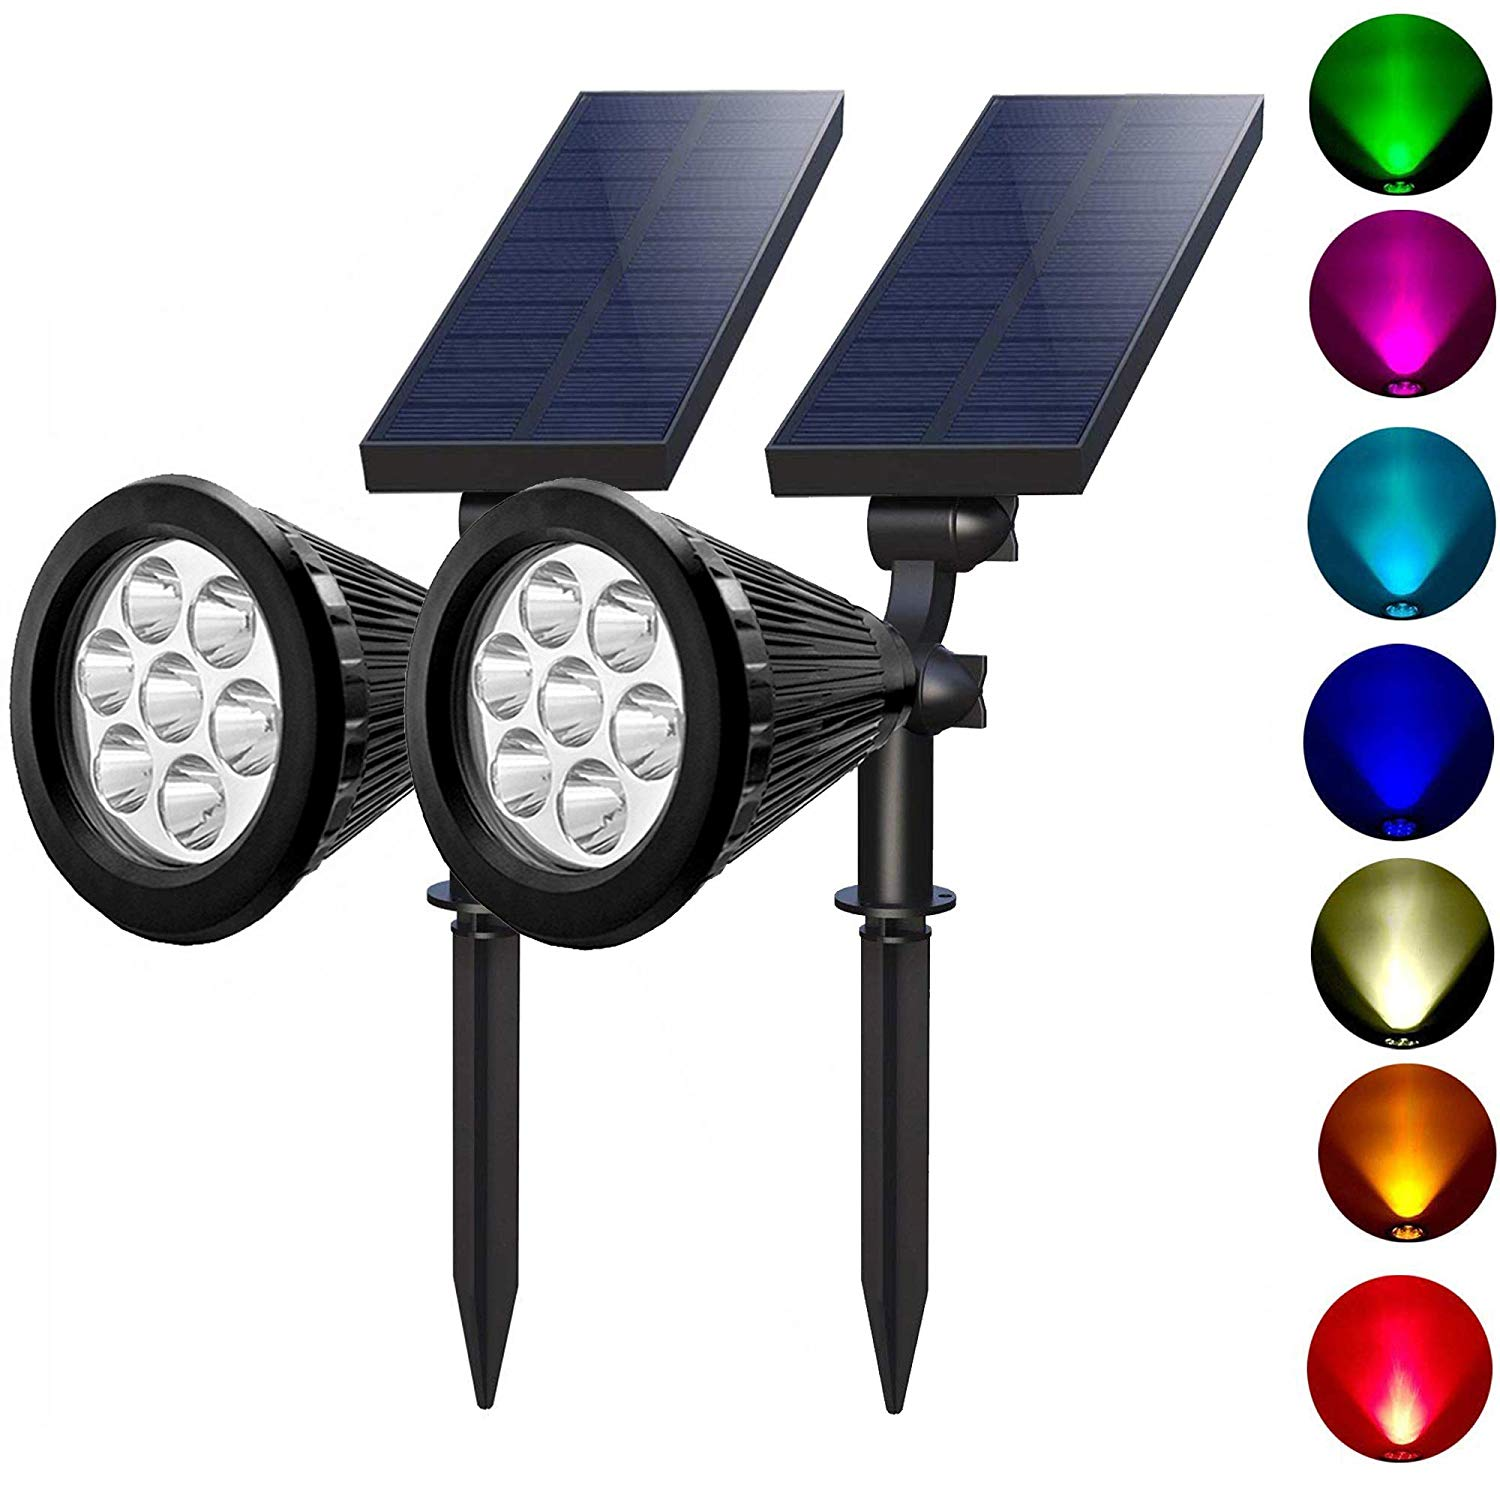 Upgraded Outdoor Landscape Security Night Lights 7 LED Solar Spot Light Sensor for Garden Patio Yard Path